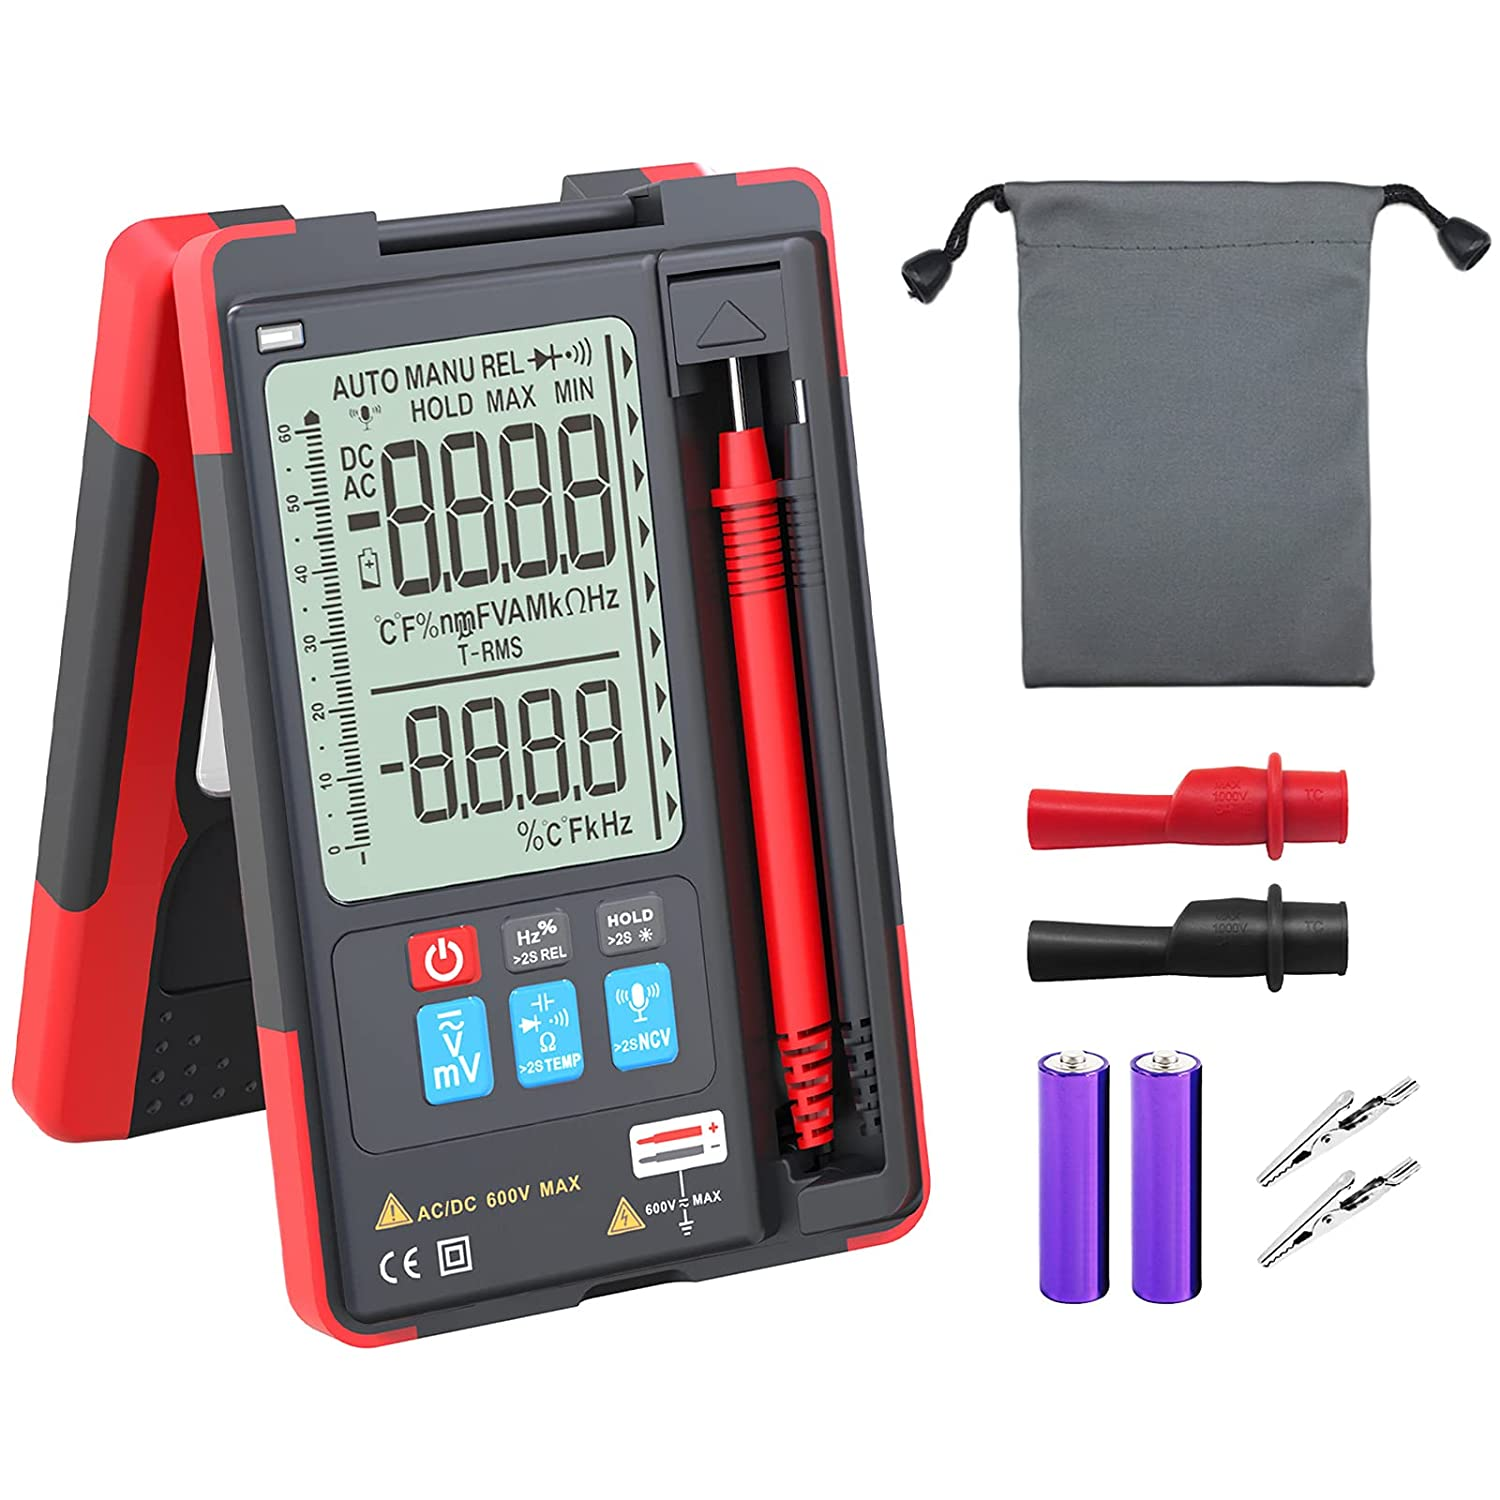 Vafany Store Digital Selling and selling Multimeter with Control Voice Auto-Ranging Meter